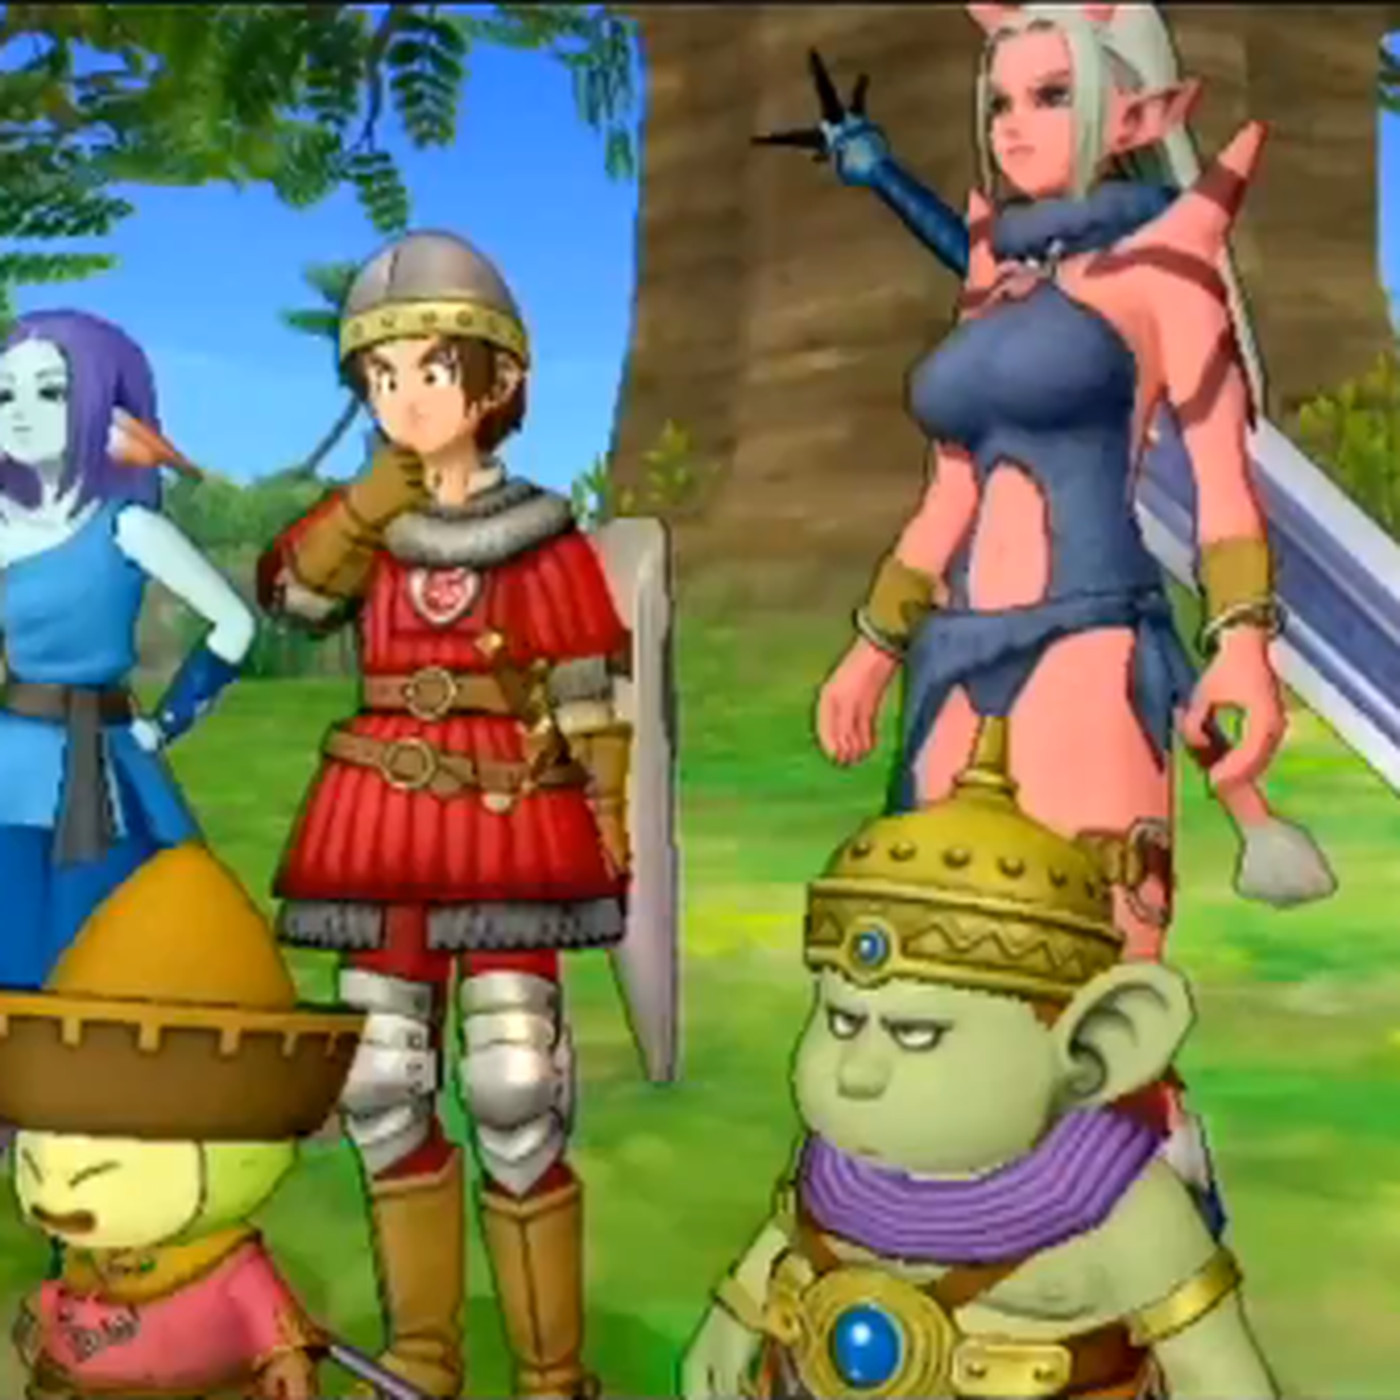 Dragon Quest 10 expansion heading to Wii U, Wii and PC - Polygon